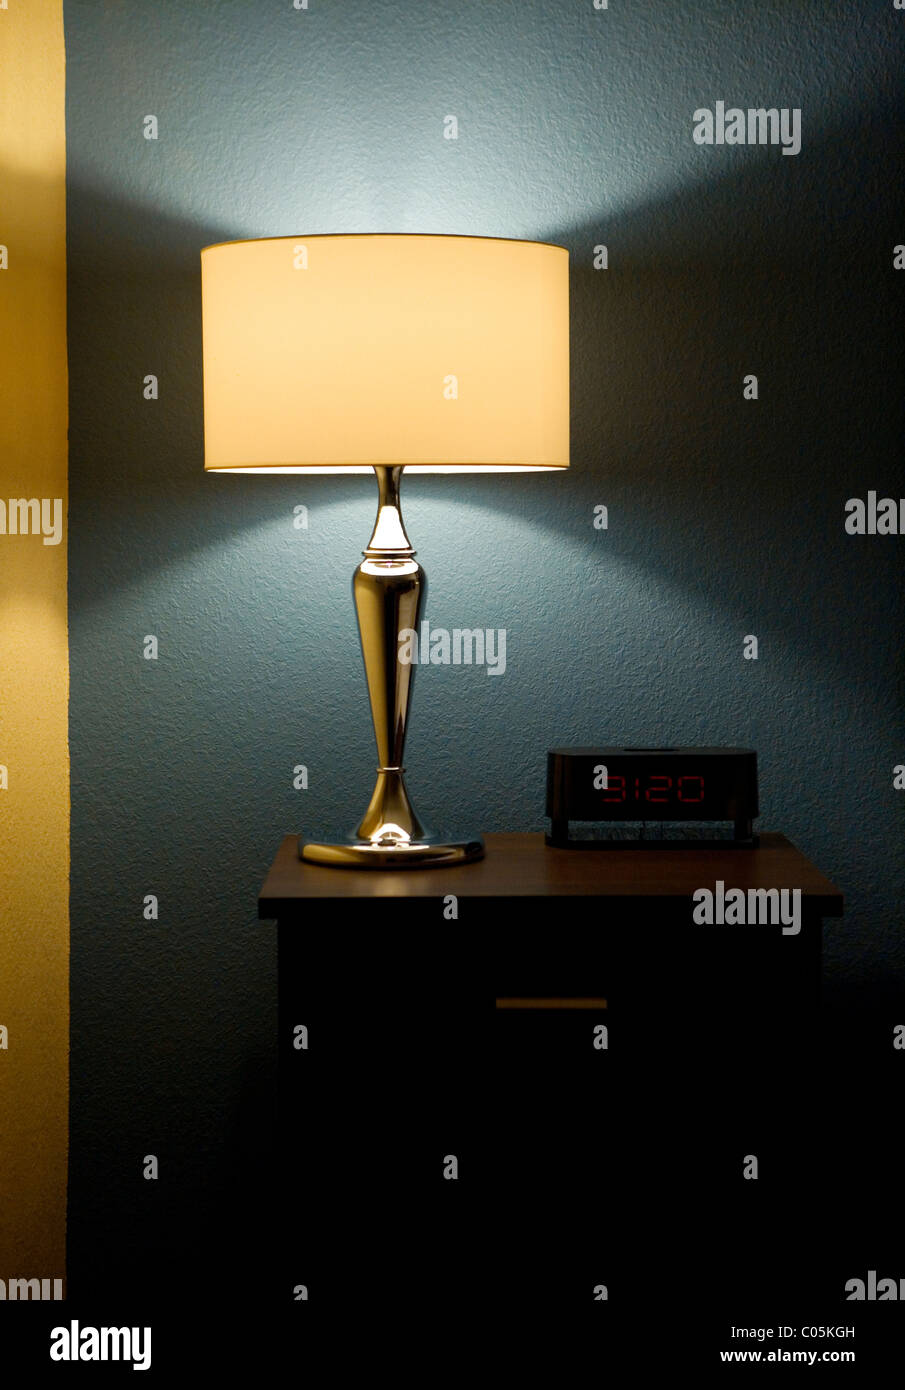 Lamp, digital clock, and end table next to a bed. - Stock Image